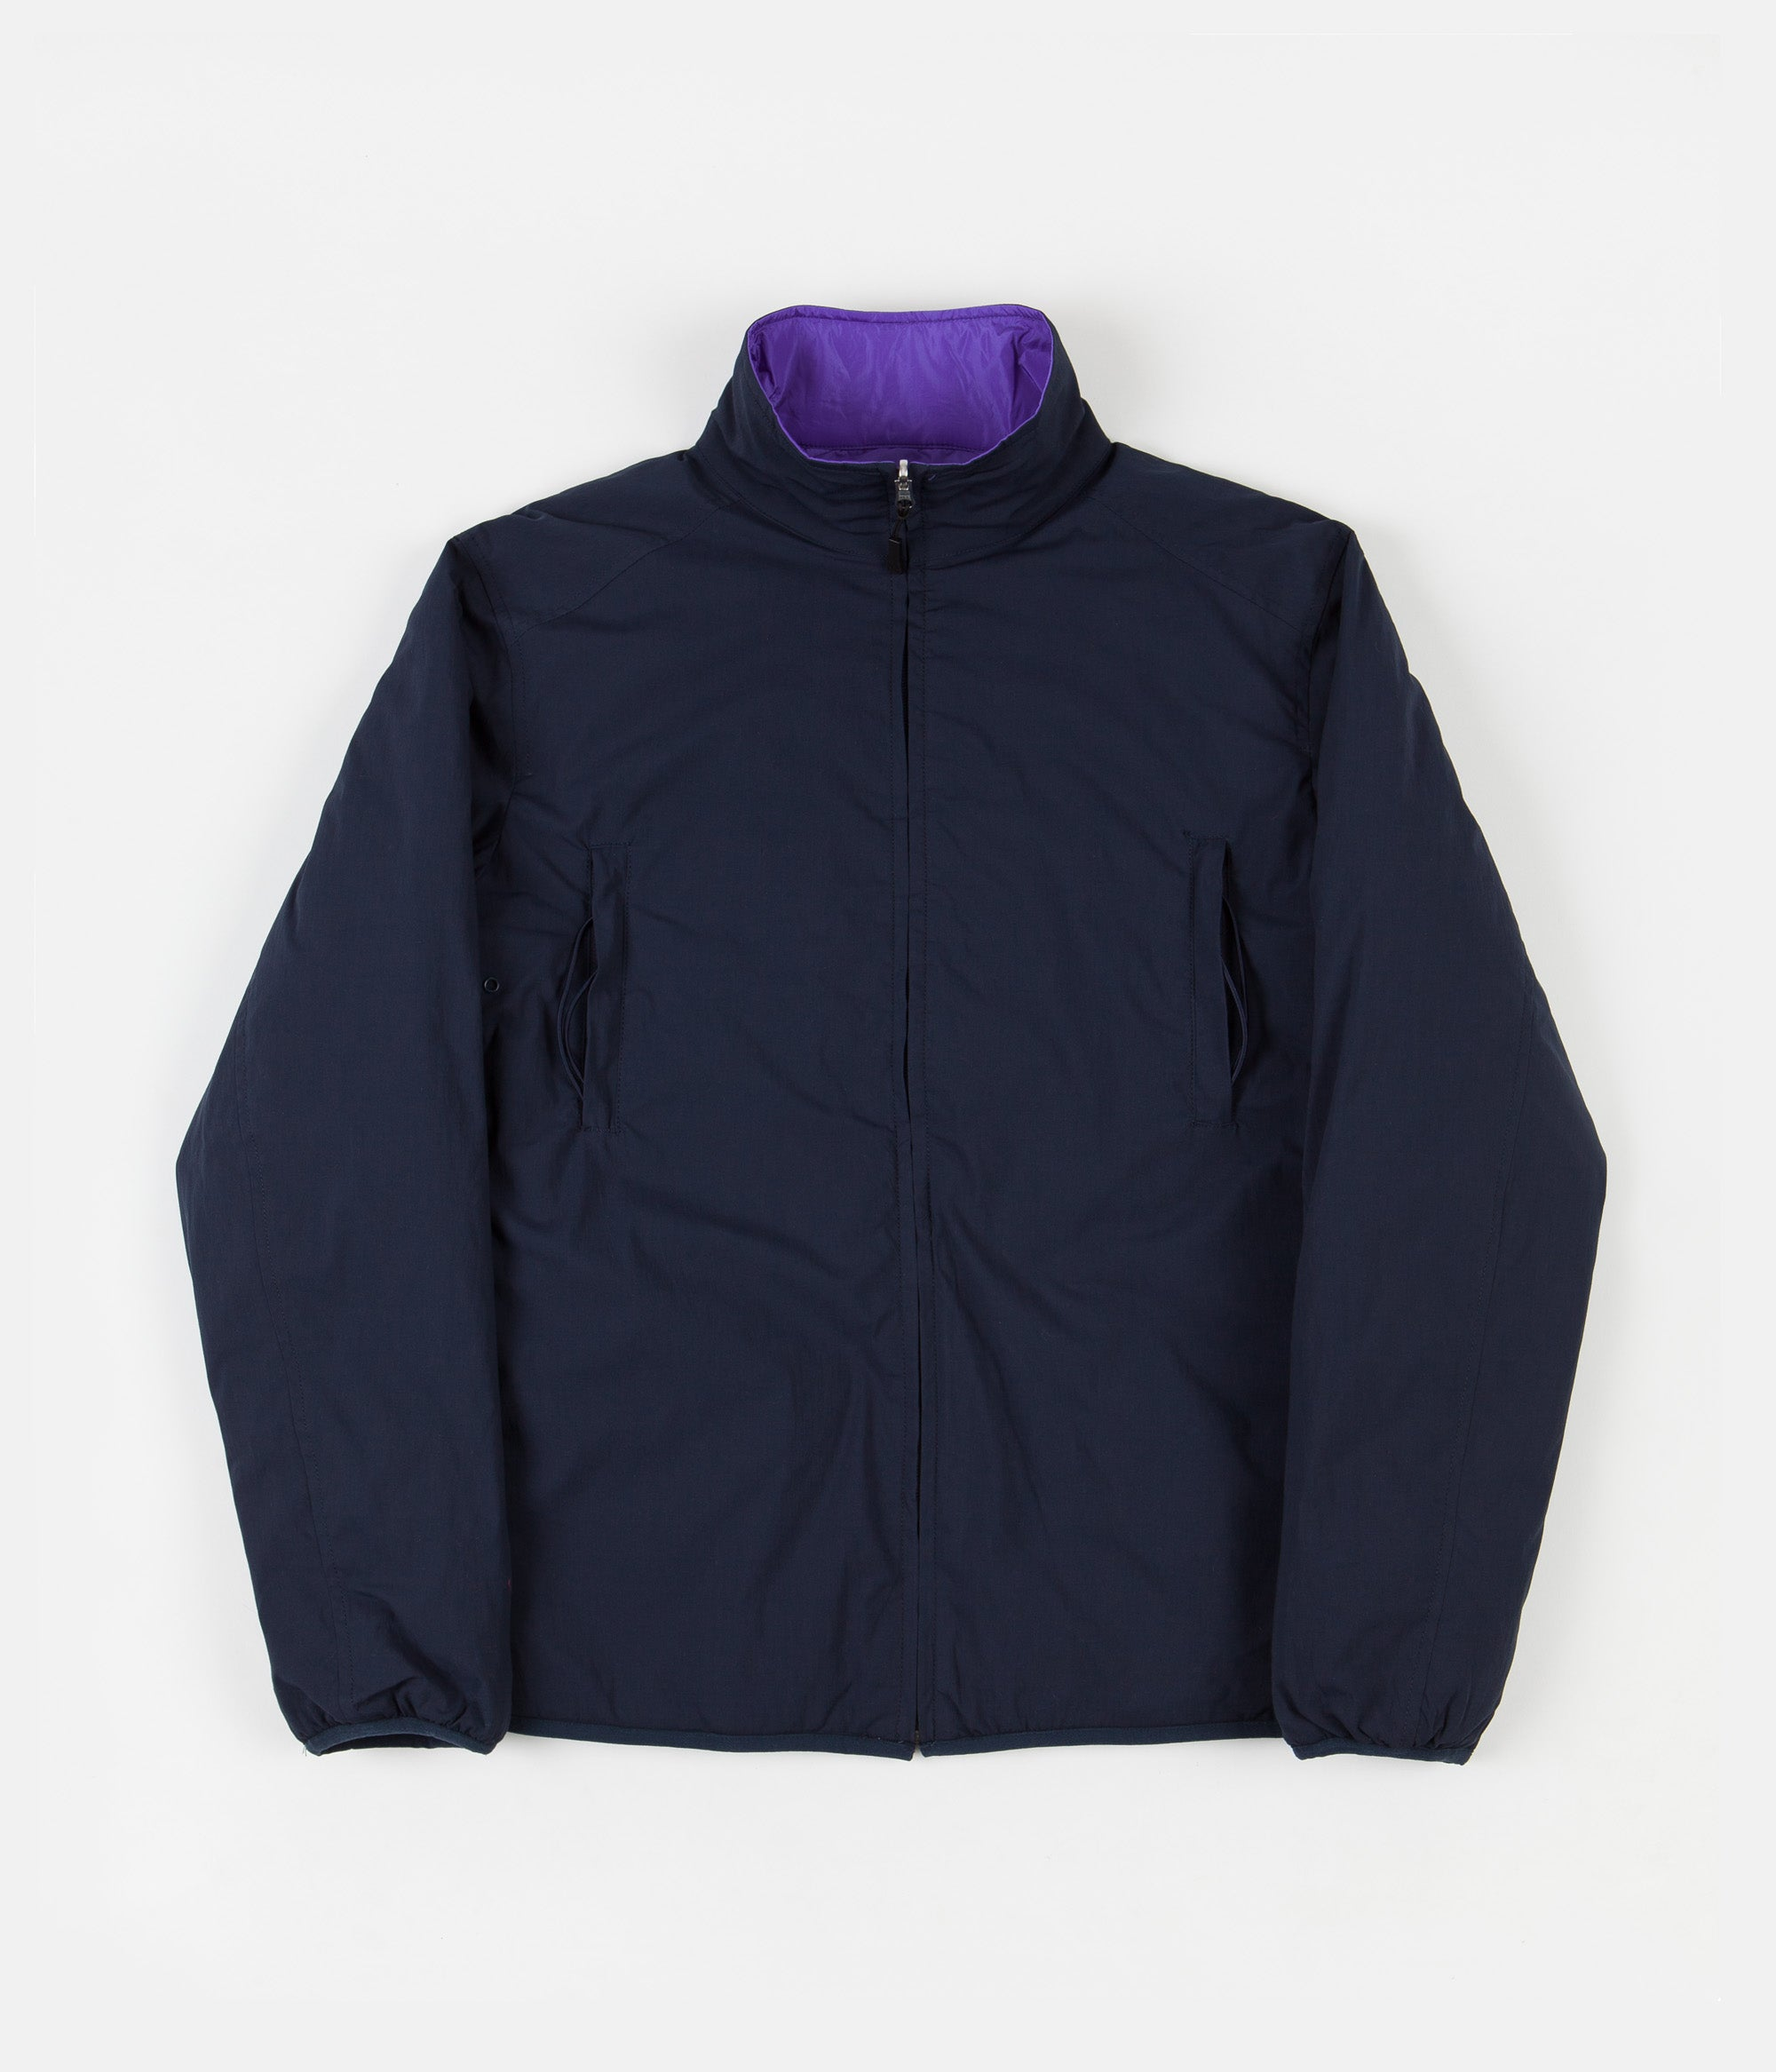 Pop Trading Company Plada Reversible Jacket - Navy / Grape